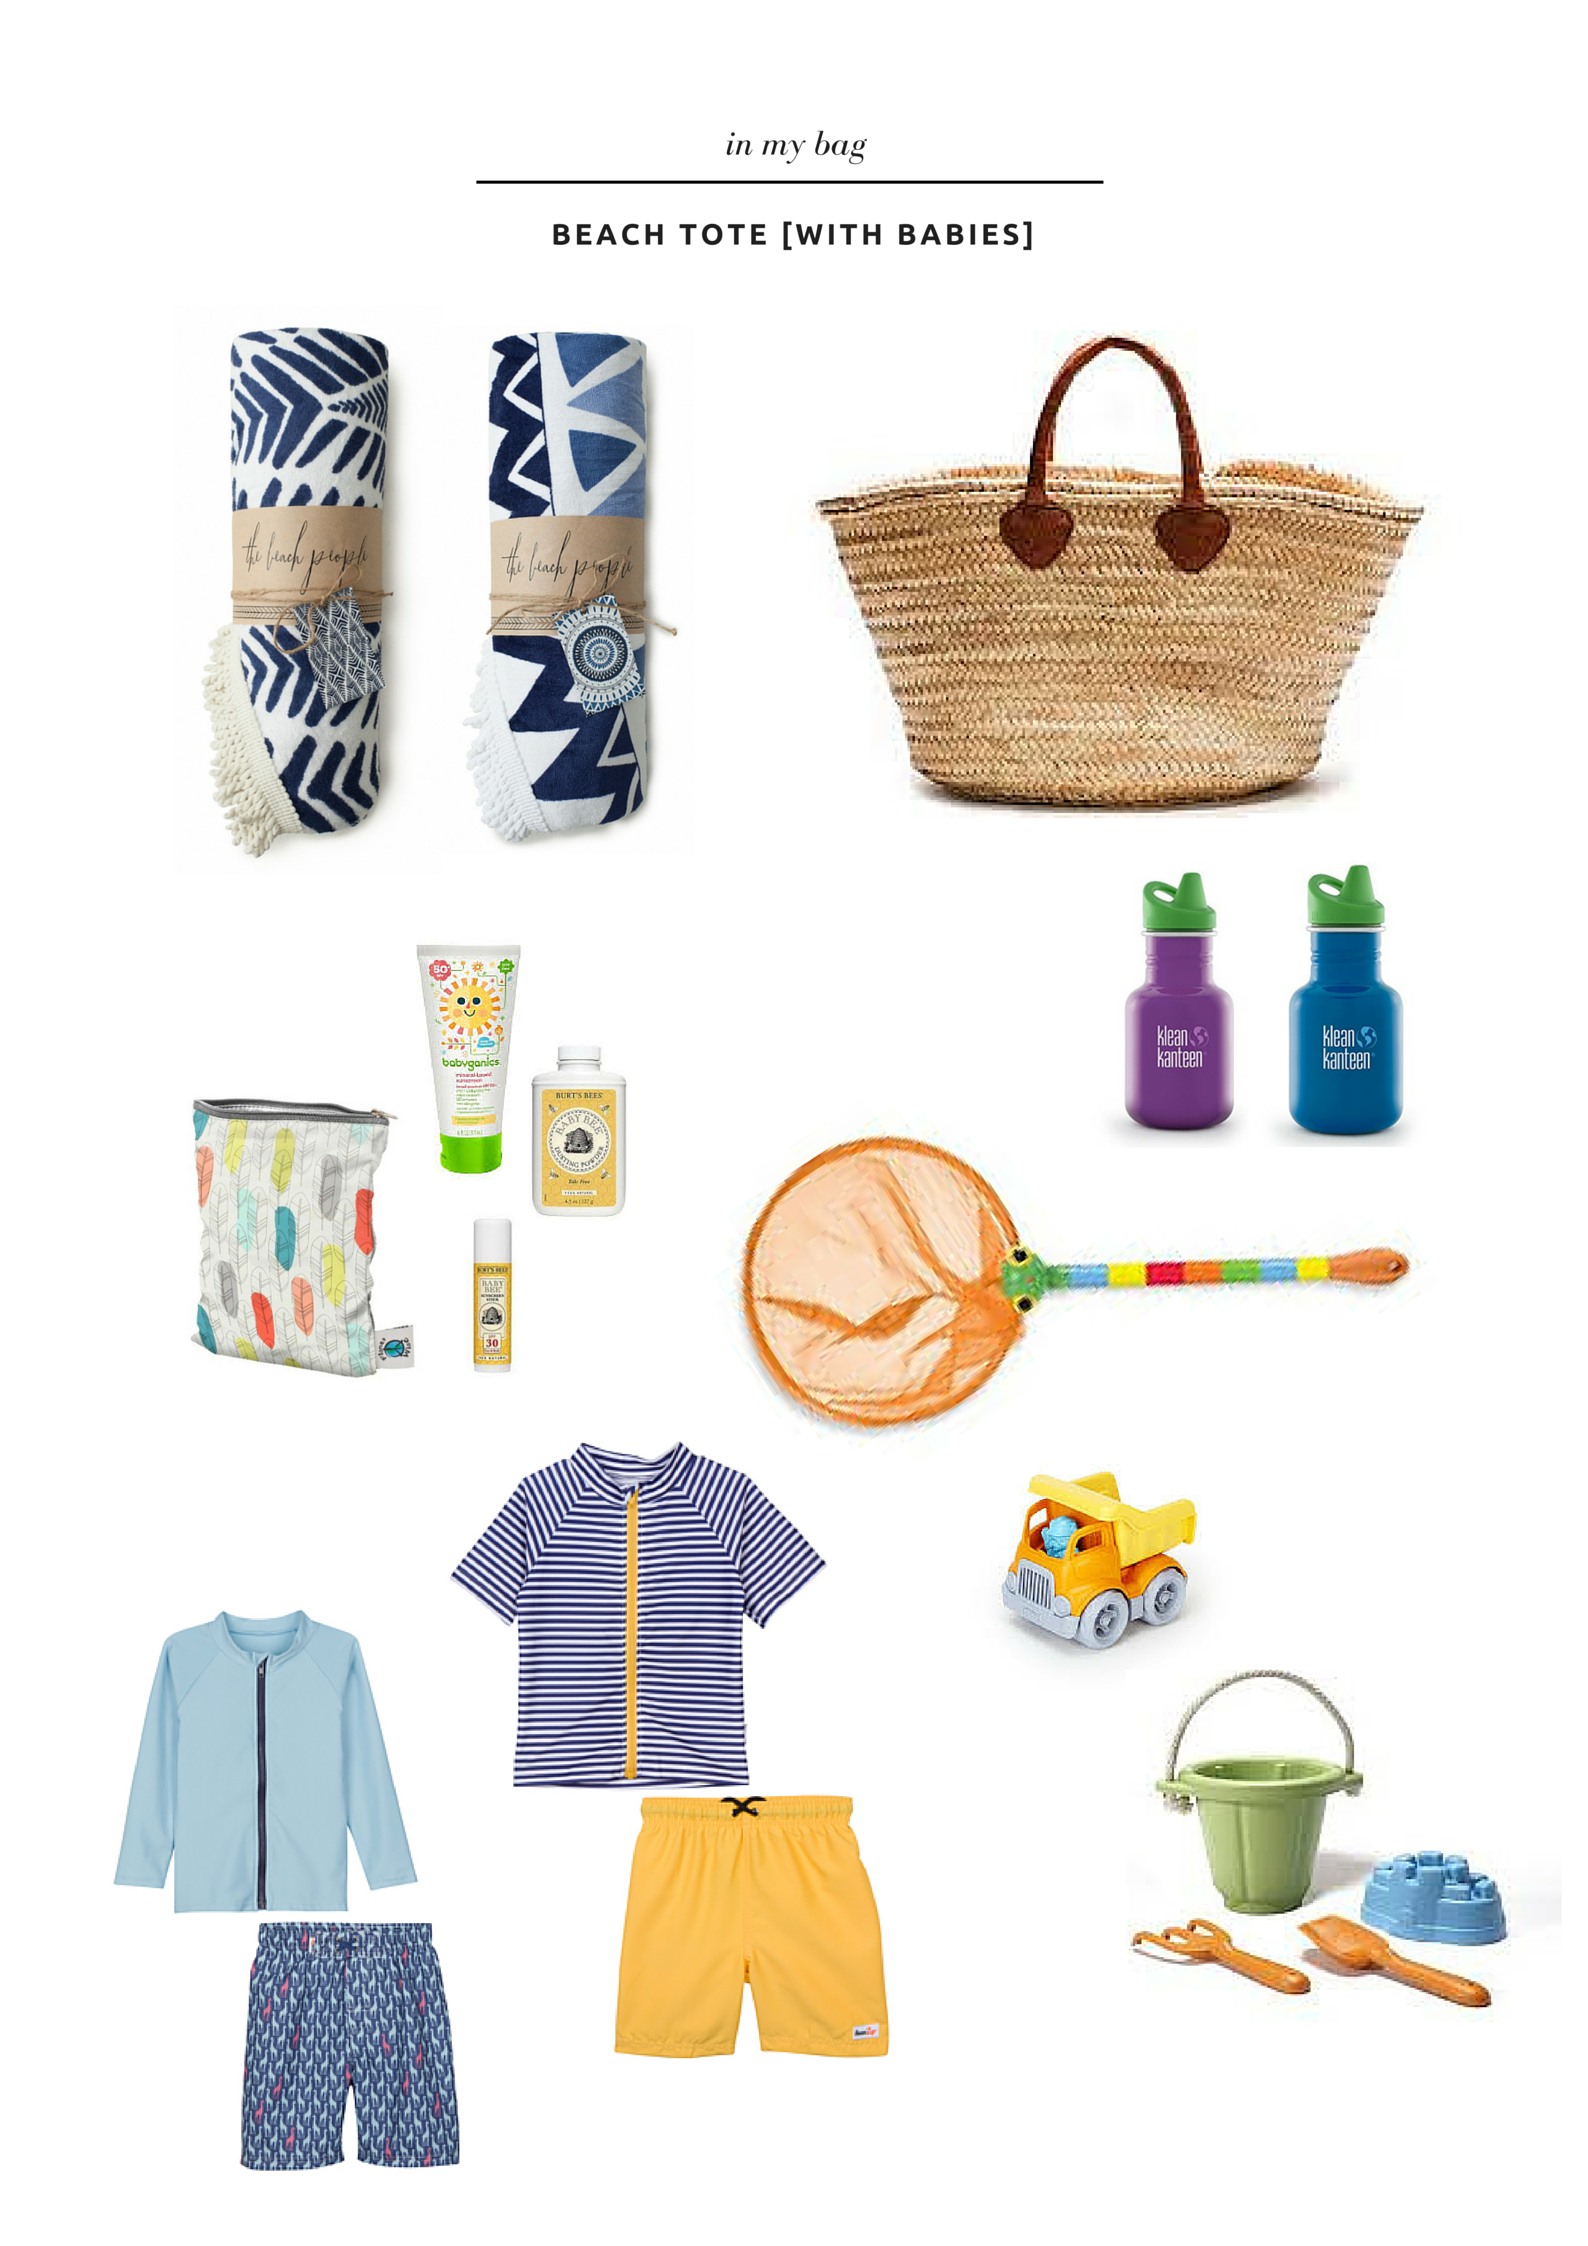 in my bag, a beach tote with babies- thelovelylauralife.com